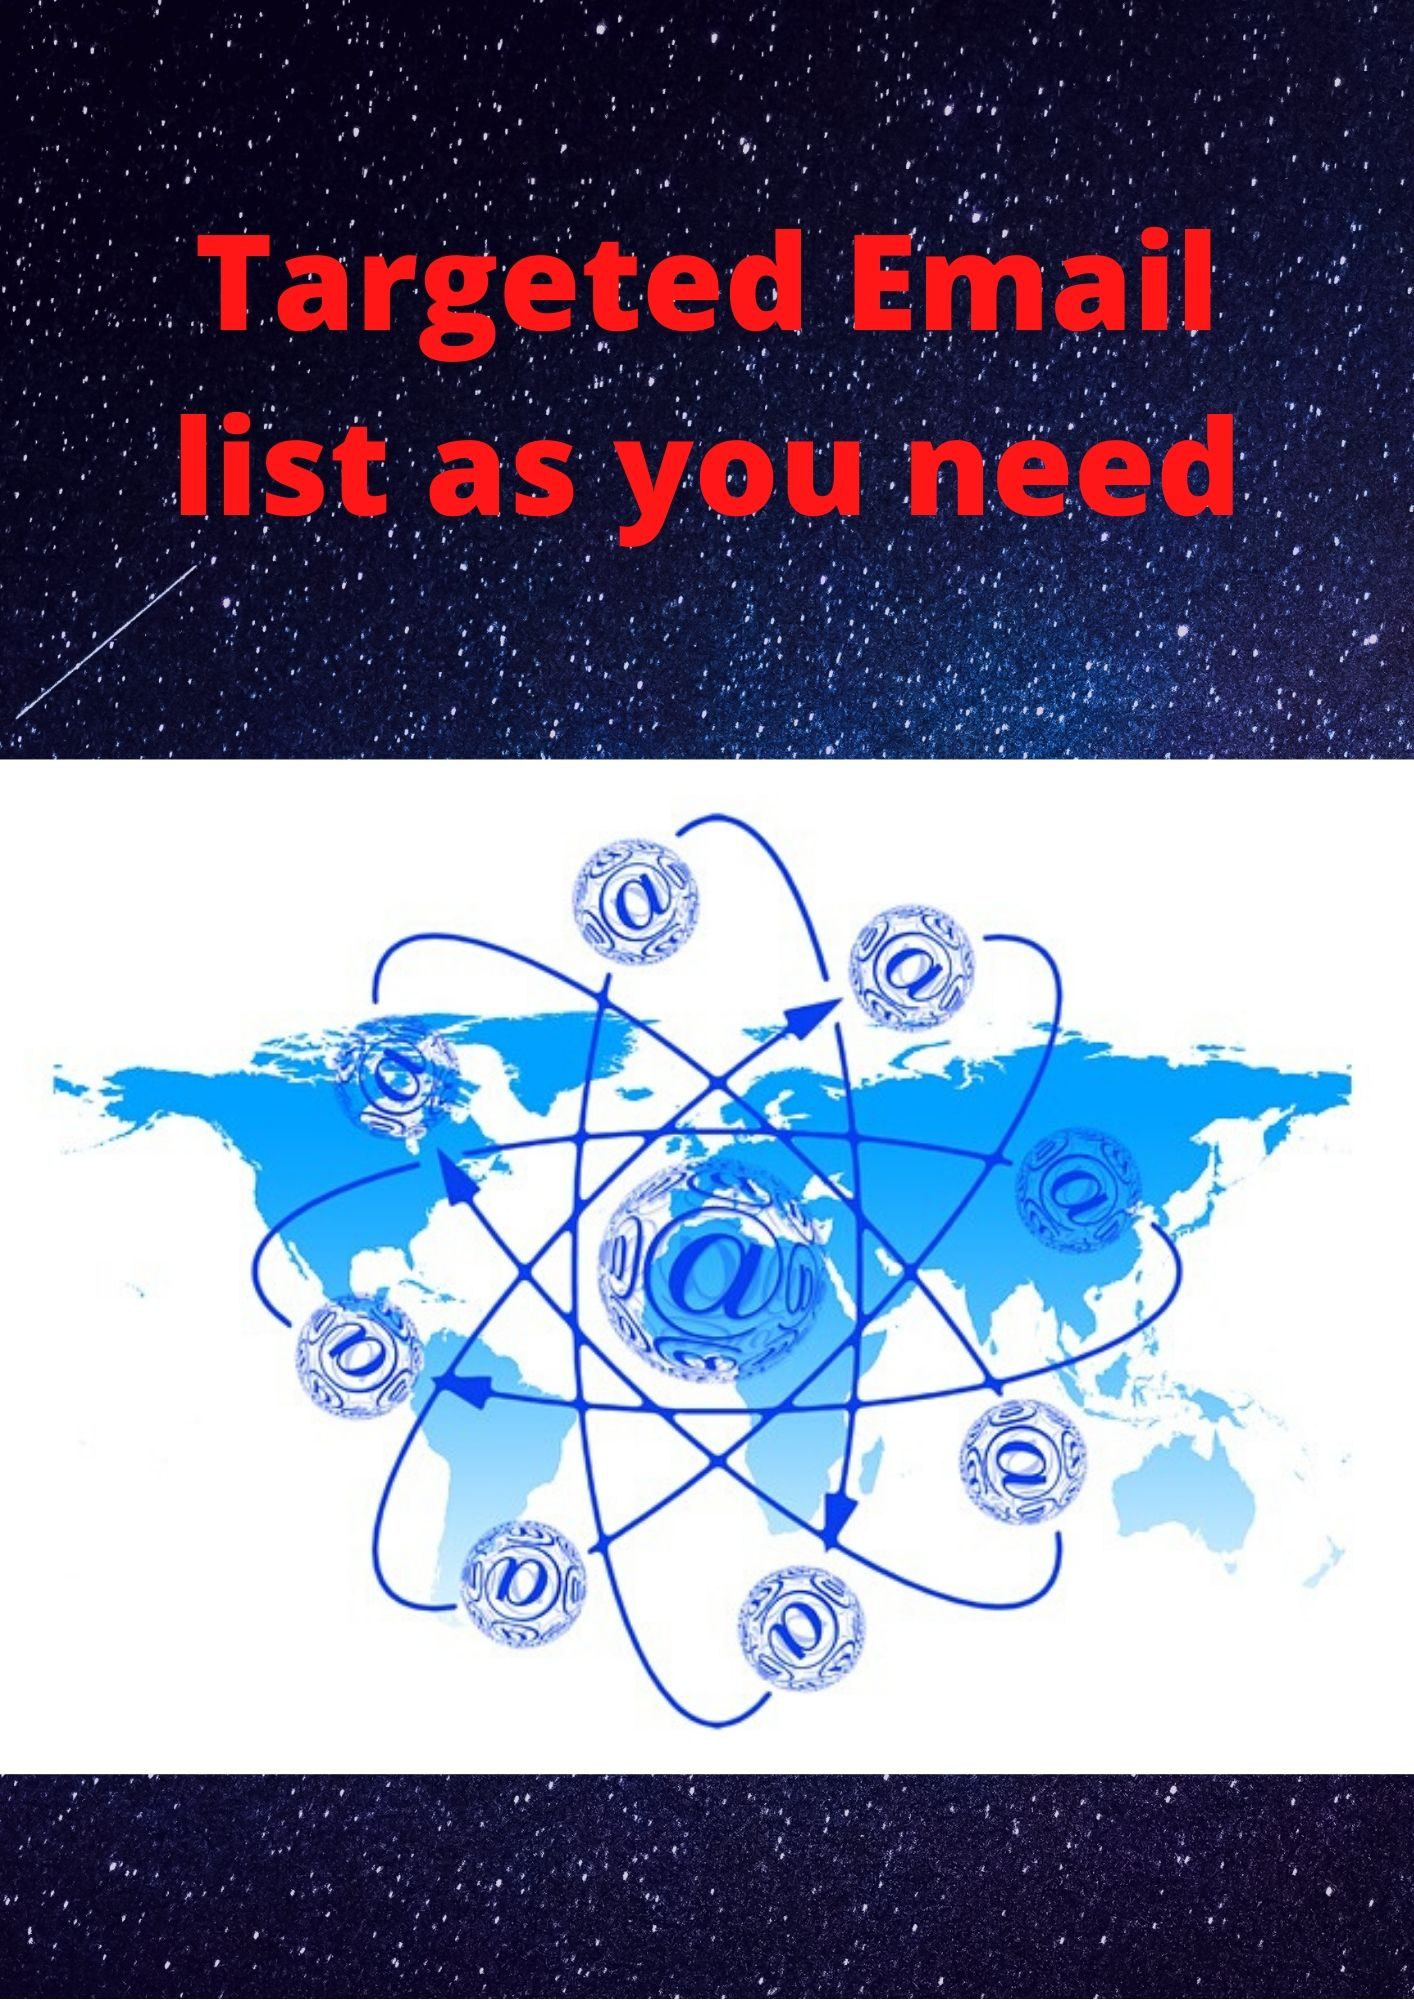 Targeted email list as you will need from all over the world